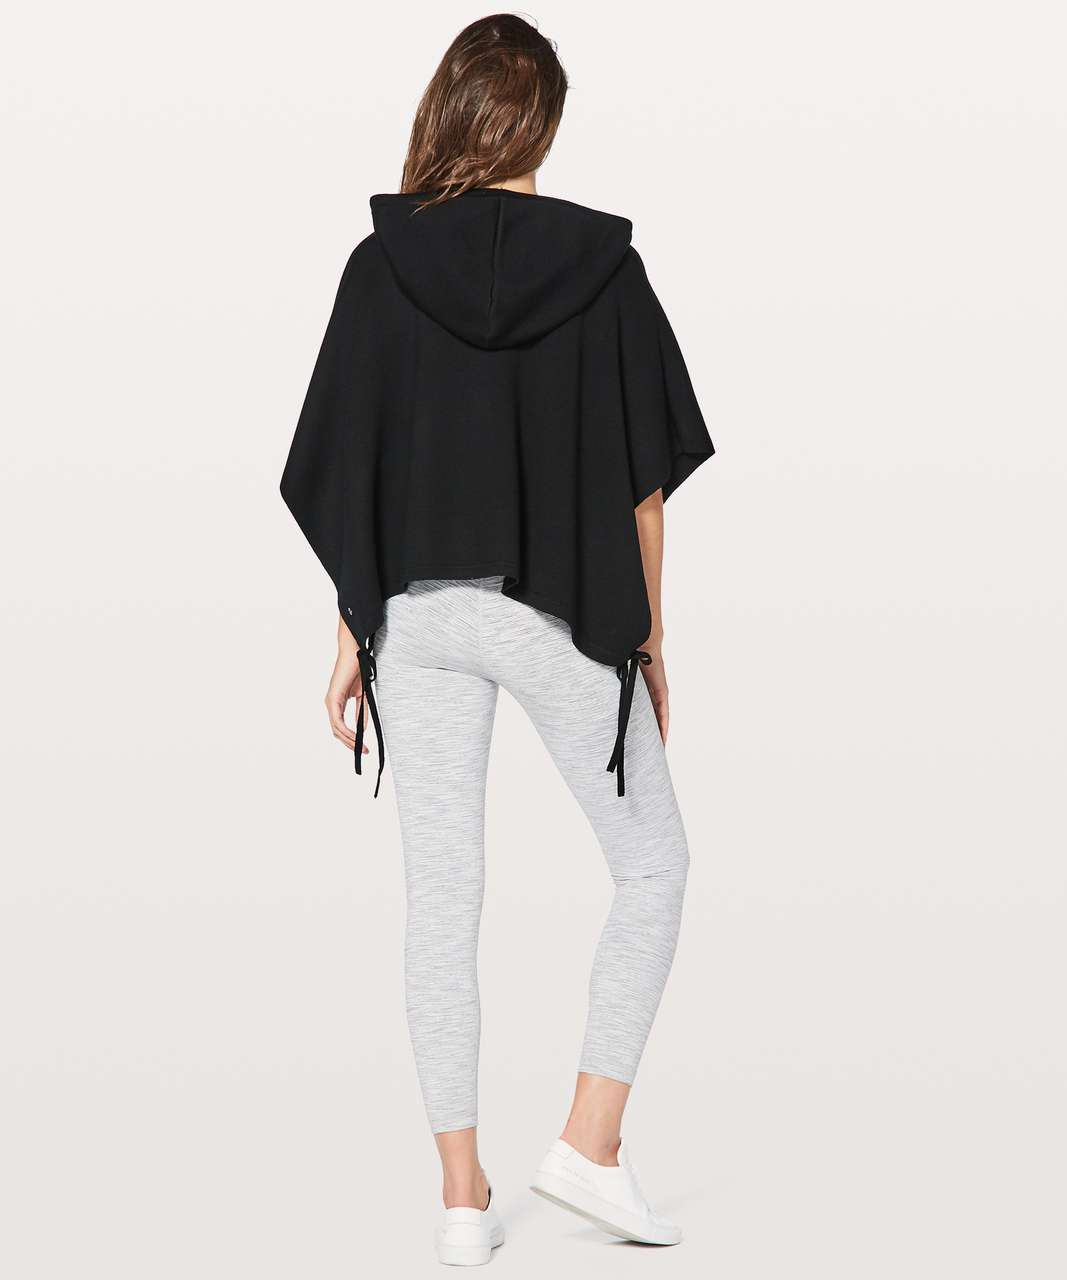 Lululemon All In A Day Hooded Poncho - Black